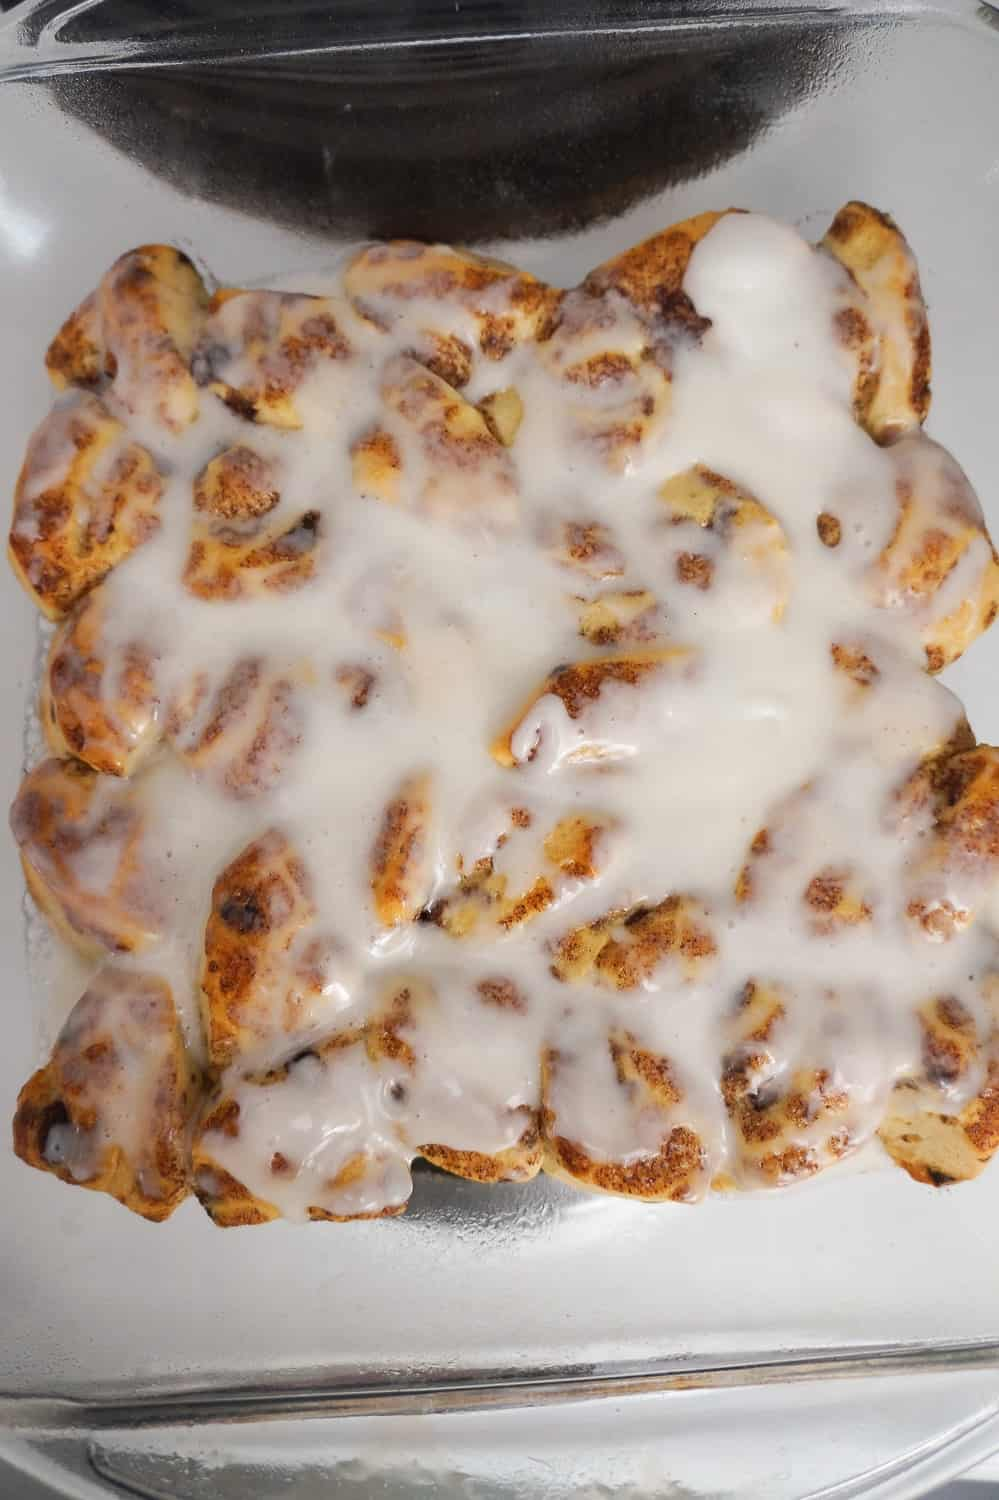 baked cinnamon bun pieces with icing